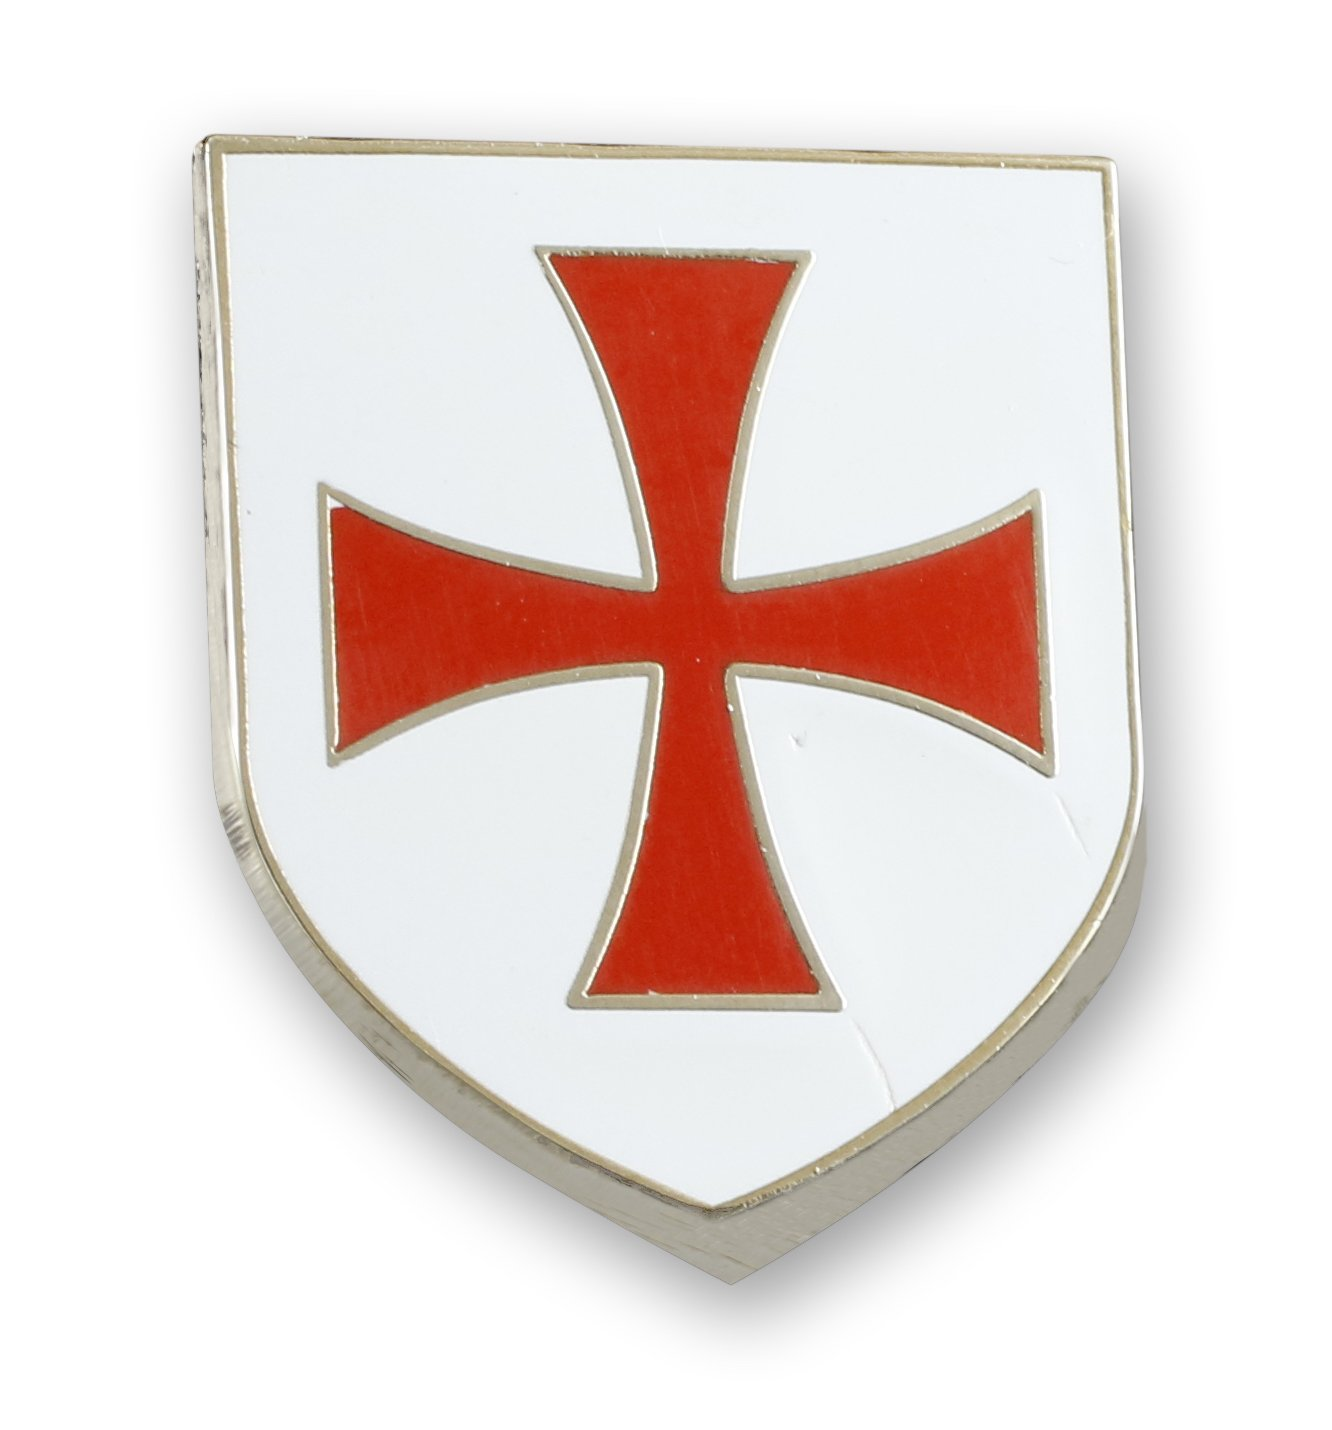 Crusader Shield Templar Knight Enamel Pin Red Cross White Background Made in USA Custom Pin